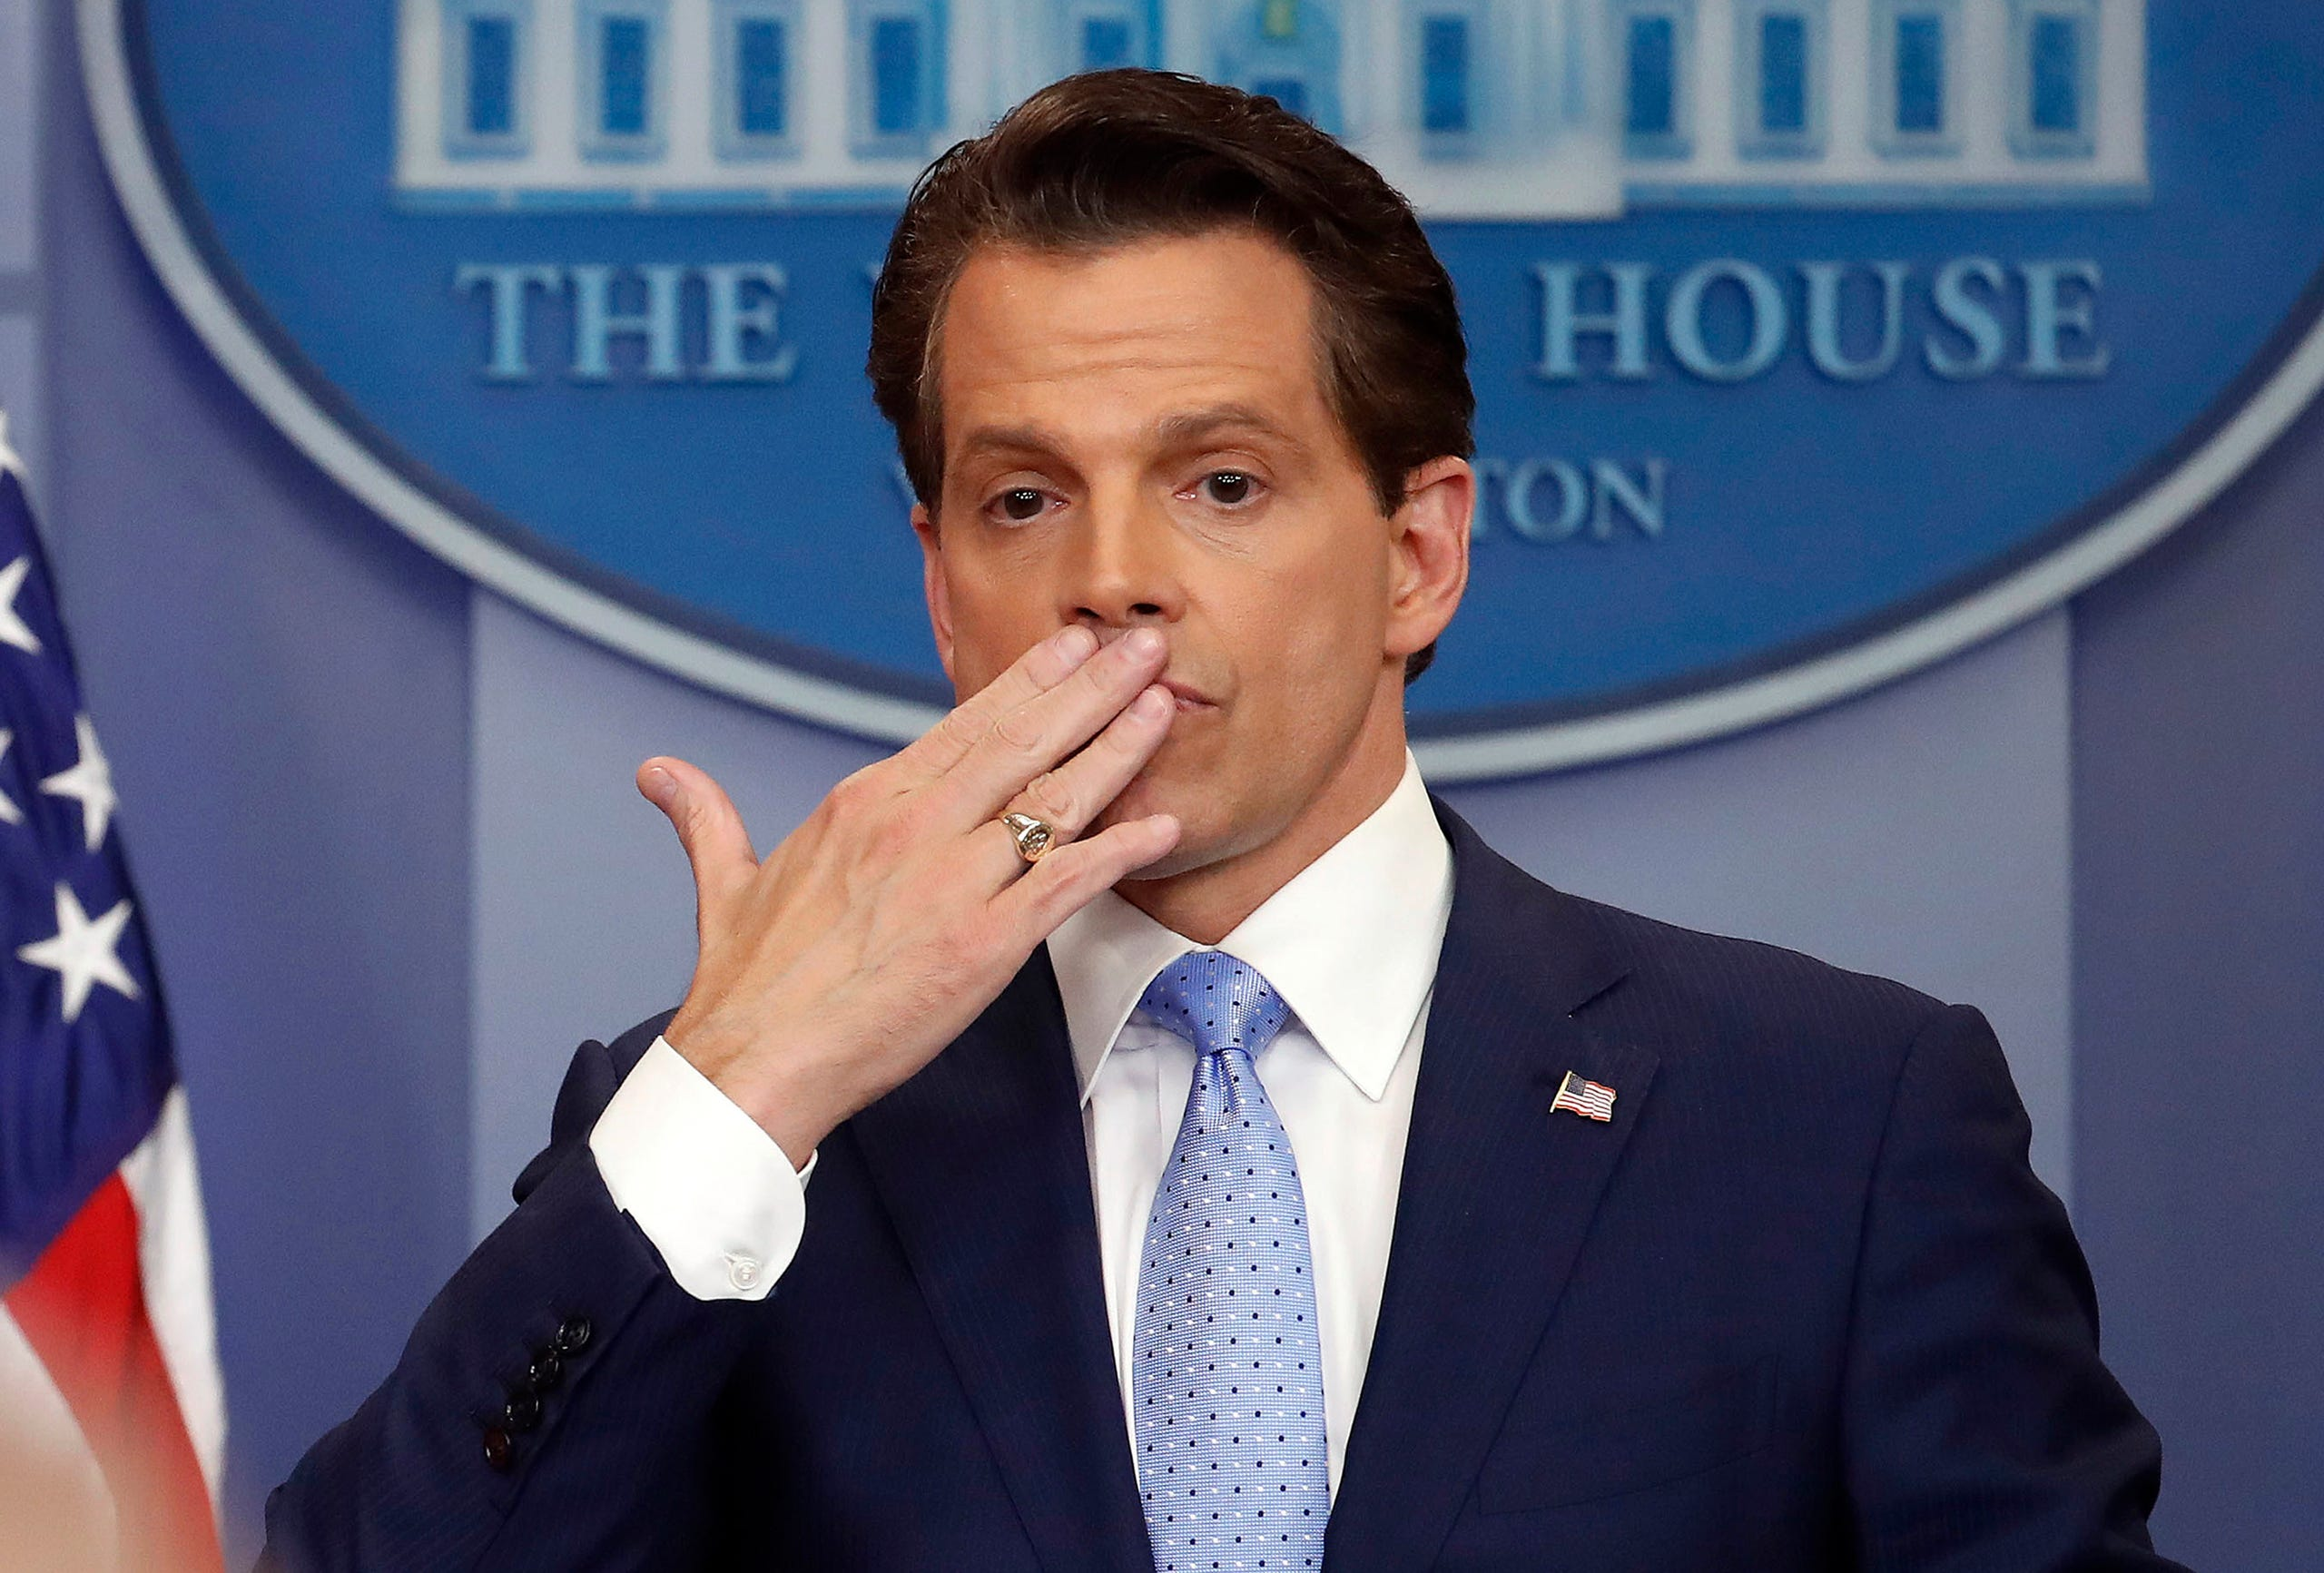 On July 31, Anthony Scaramucci left his post as White House communications director after just 11 days on the job.  A person close to Scaramucci confirmed the staffing change just hours after President Donald Trump's new chief of staff, John Kelly, was sworn into office.  In this July 21, 2017 photo, incoming White House communications director Anthony Scaramucci,blows a kiss after answering questions during the press briefing in the Brady